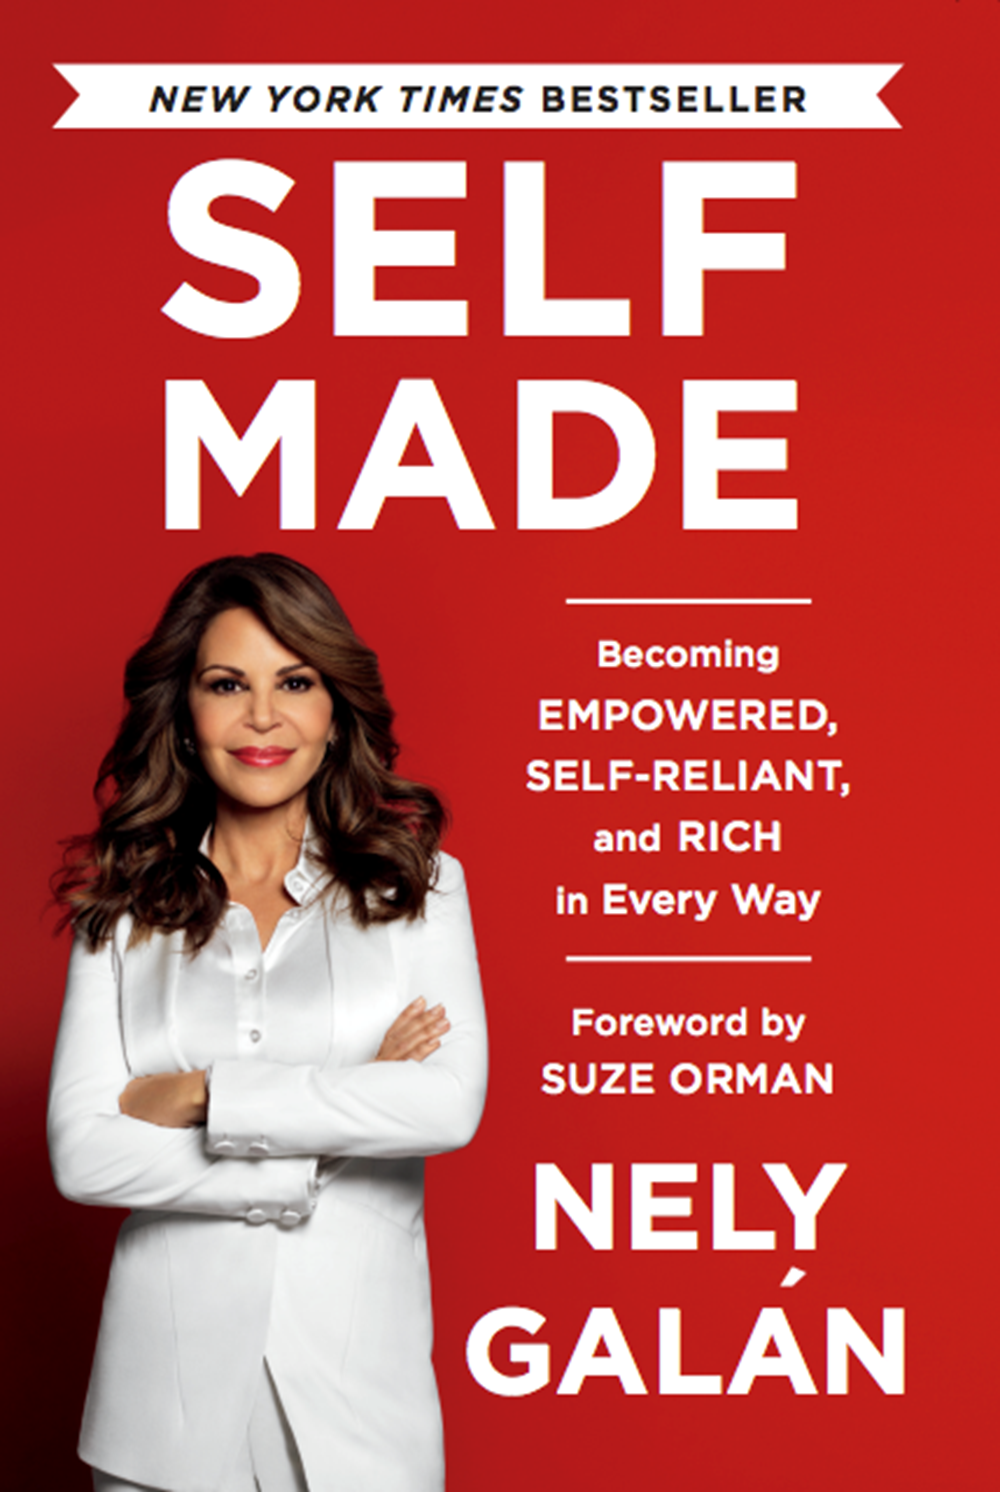 Self Made Becoming Empowered, Self-Reliant, and Rich in Every Way